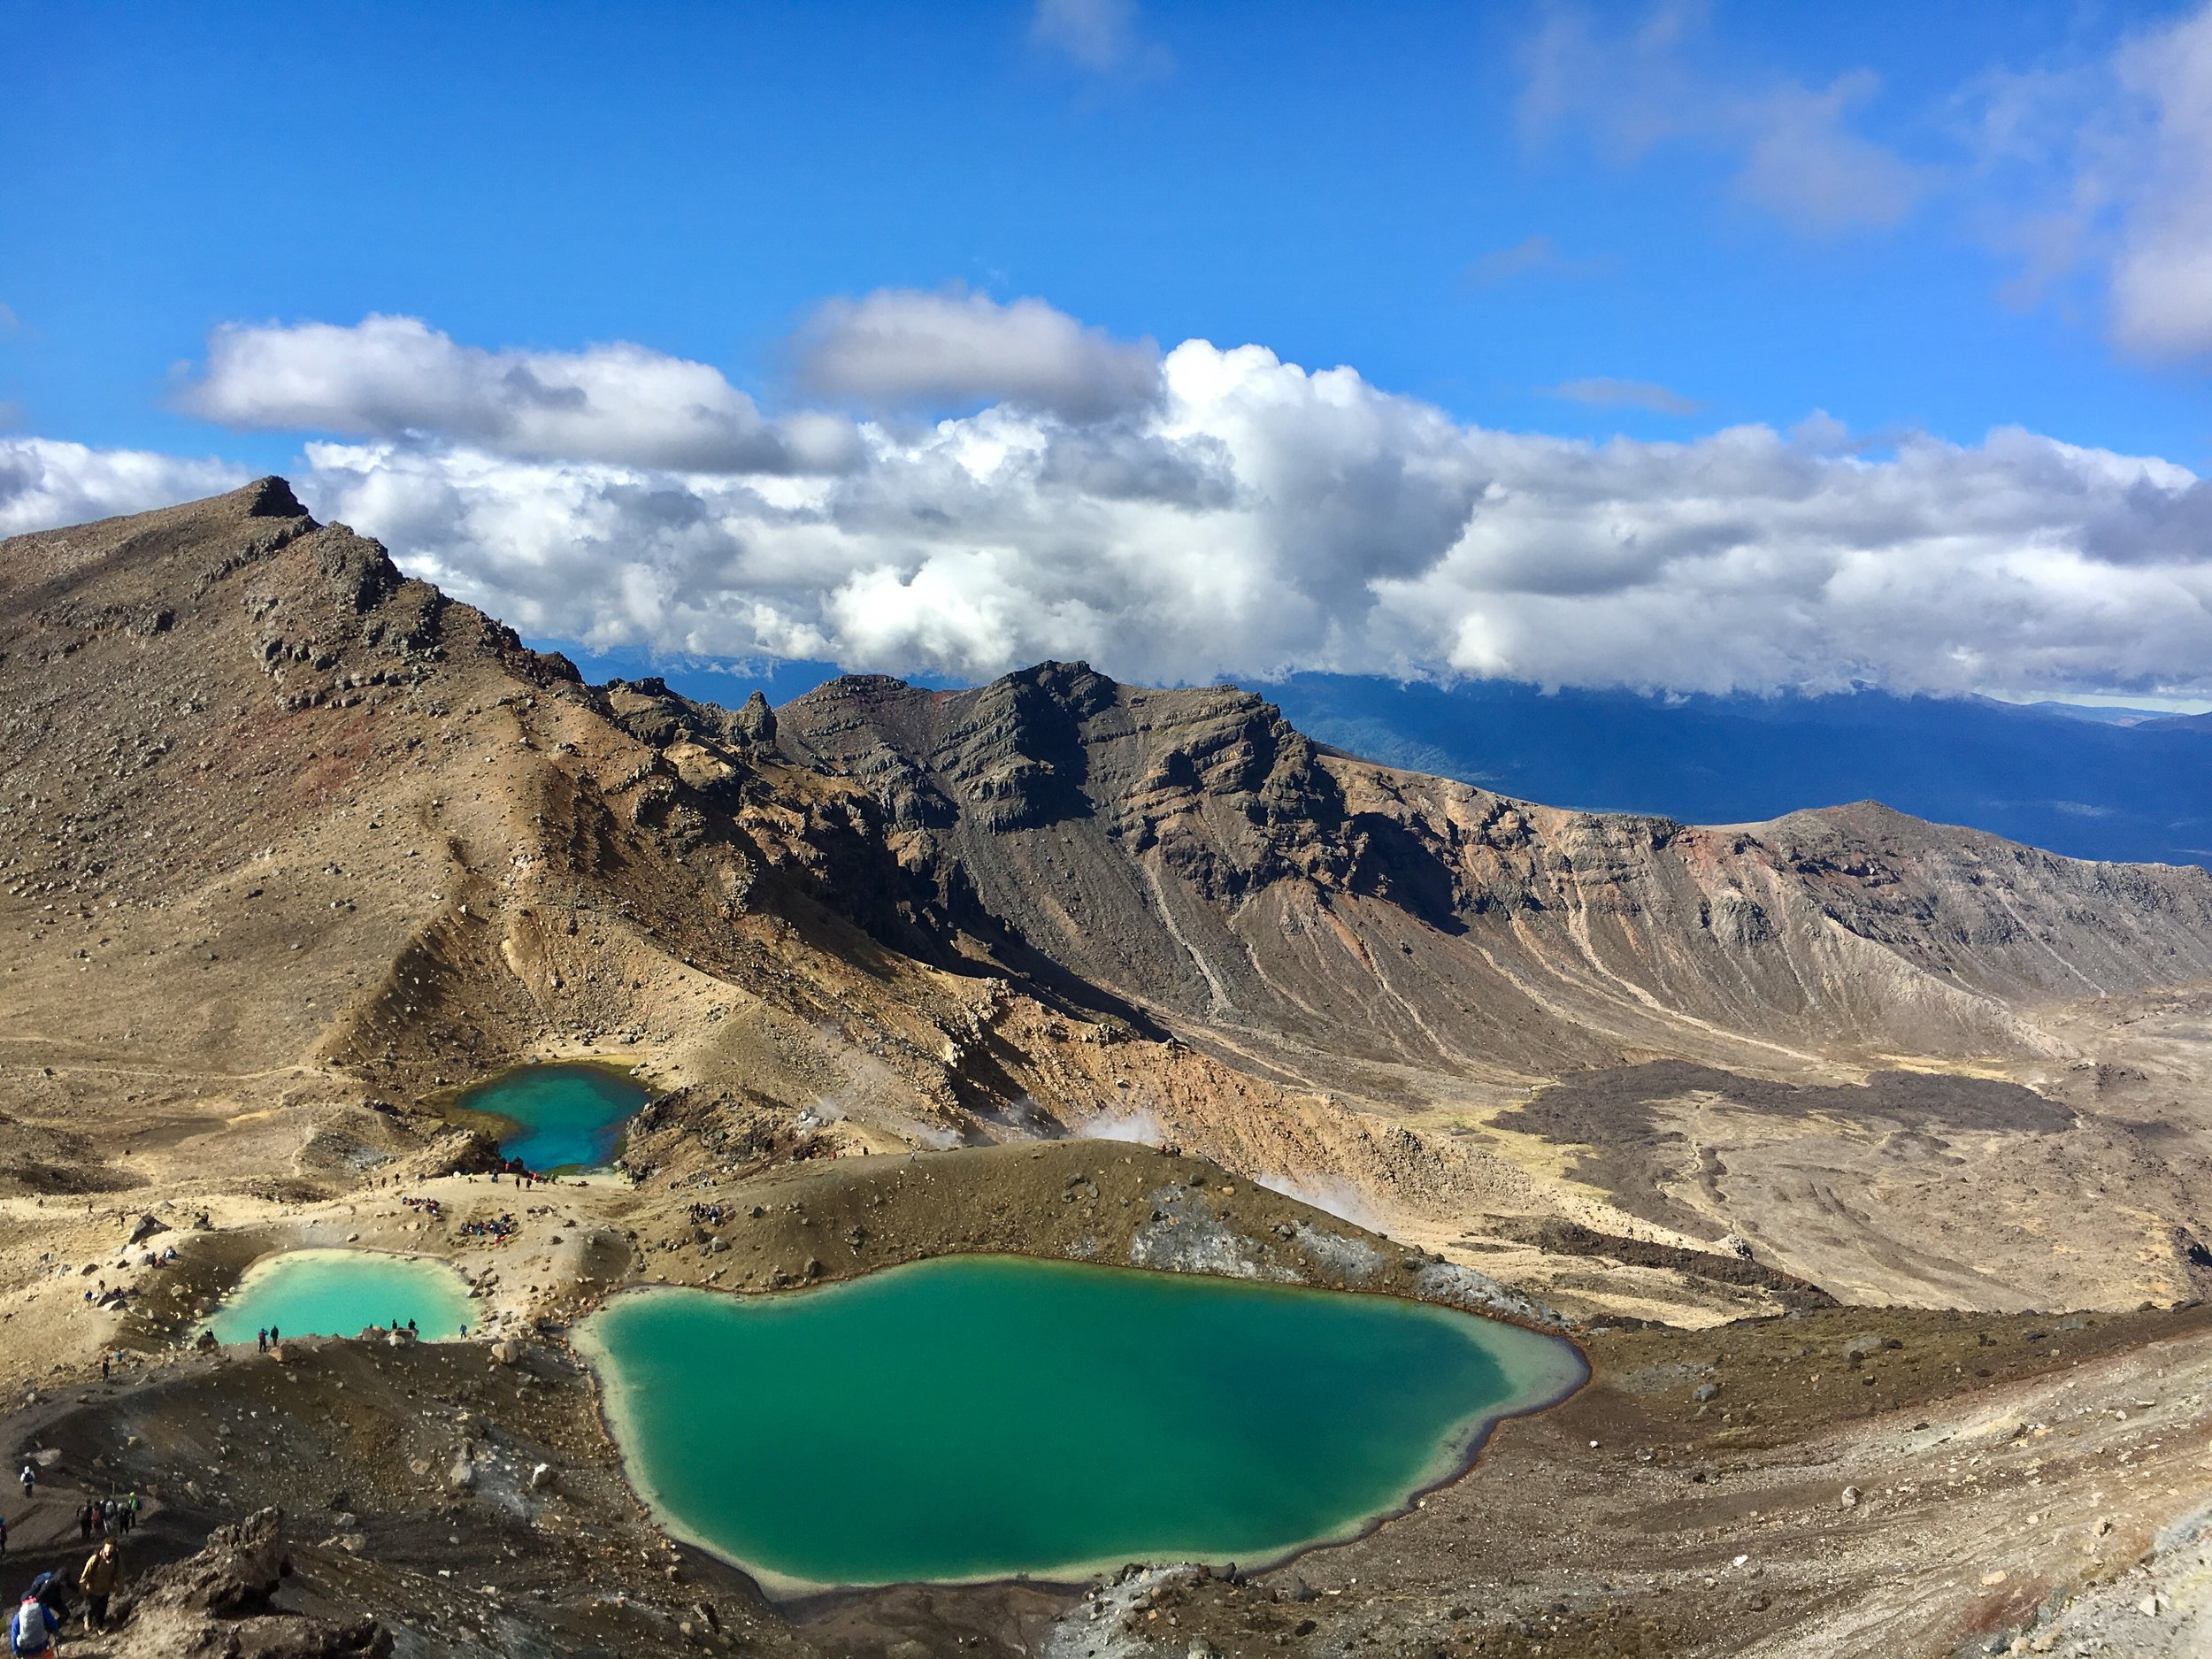 Some of the crater lakes